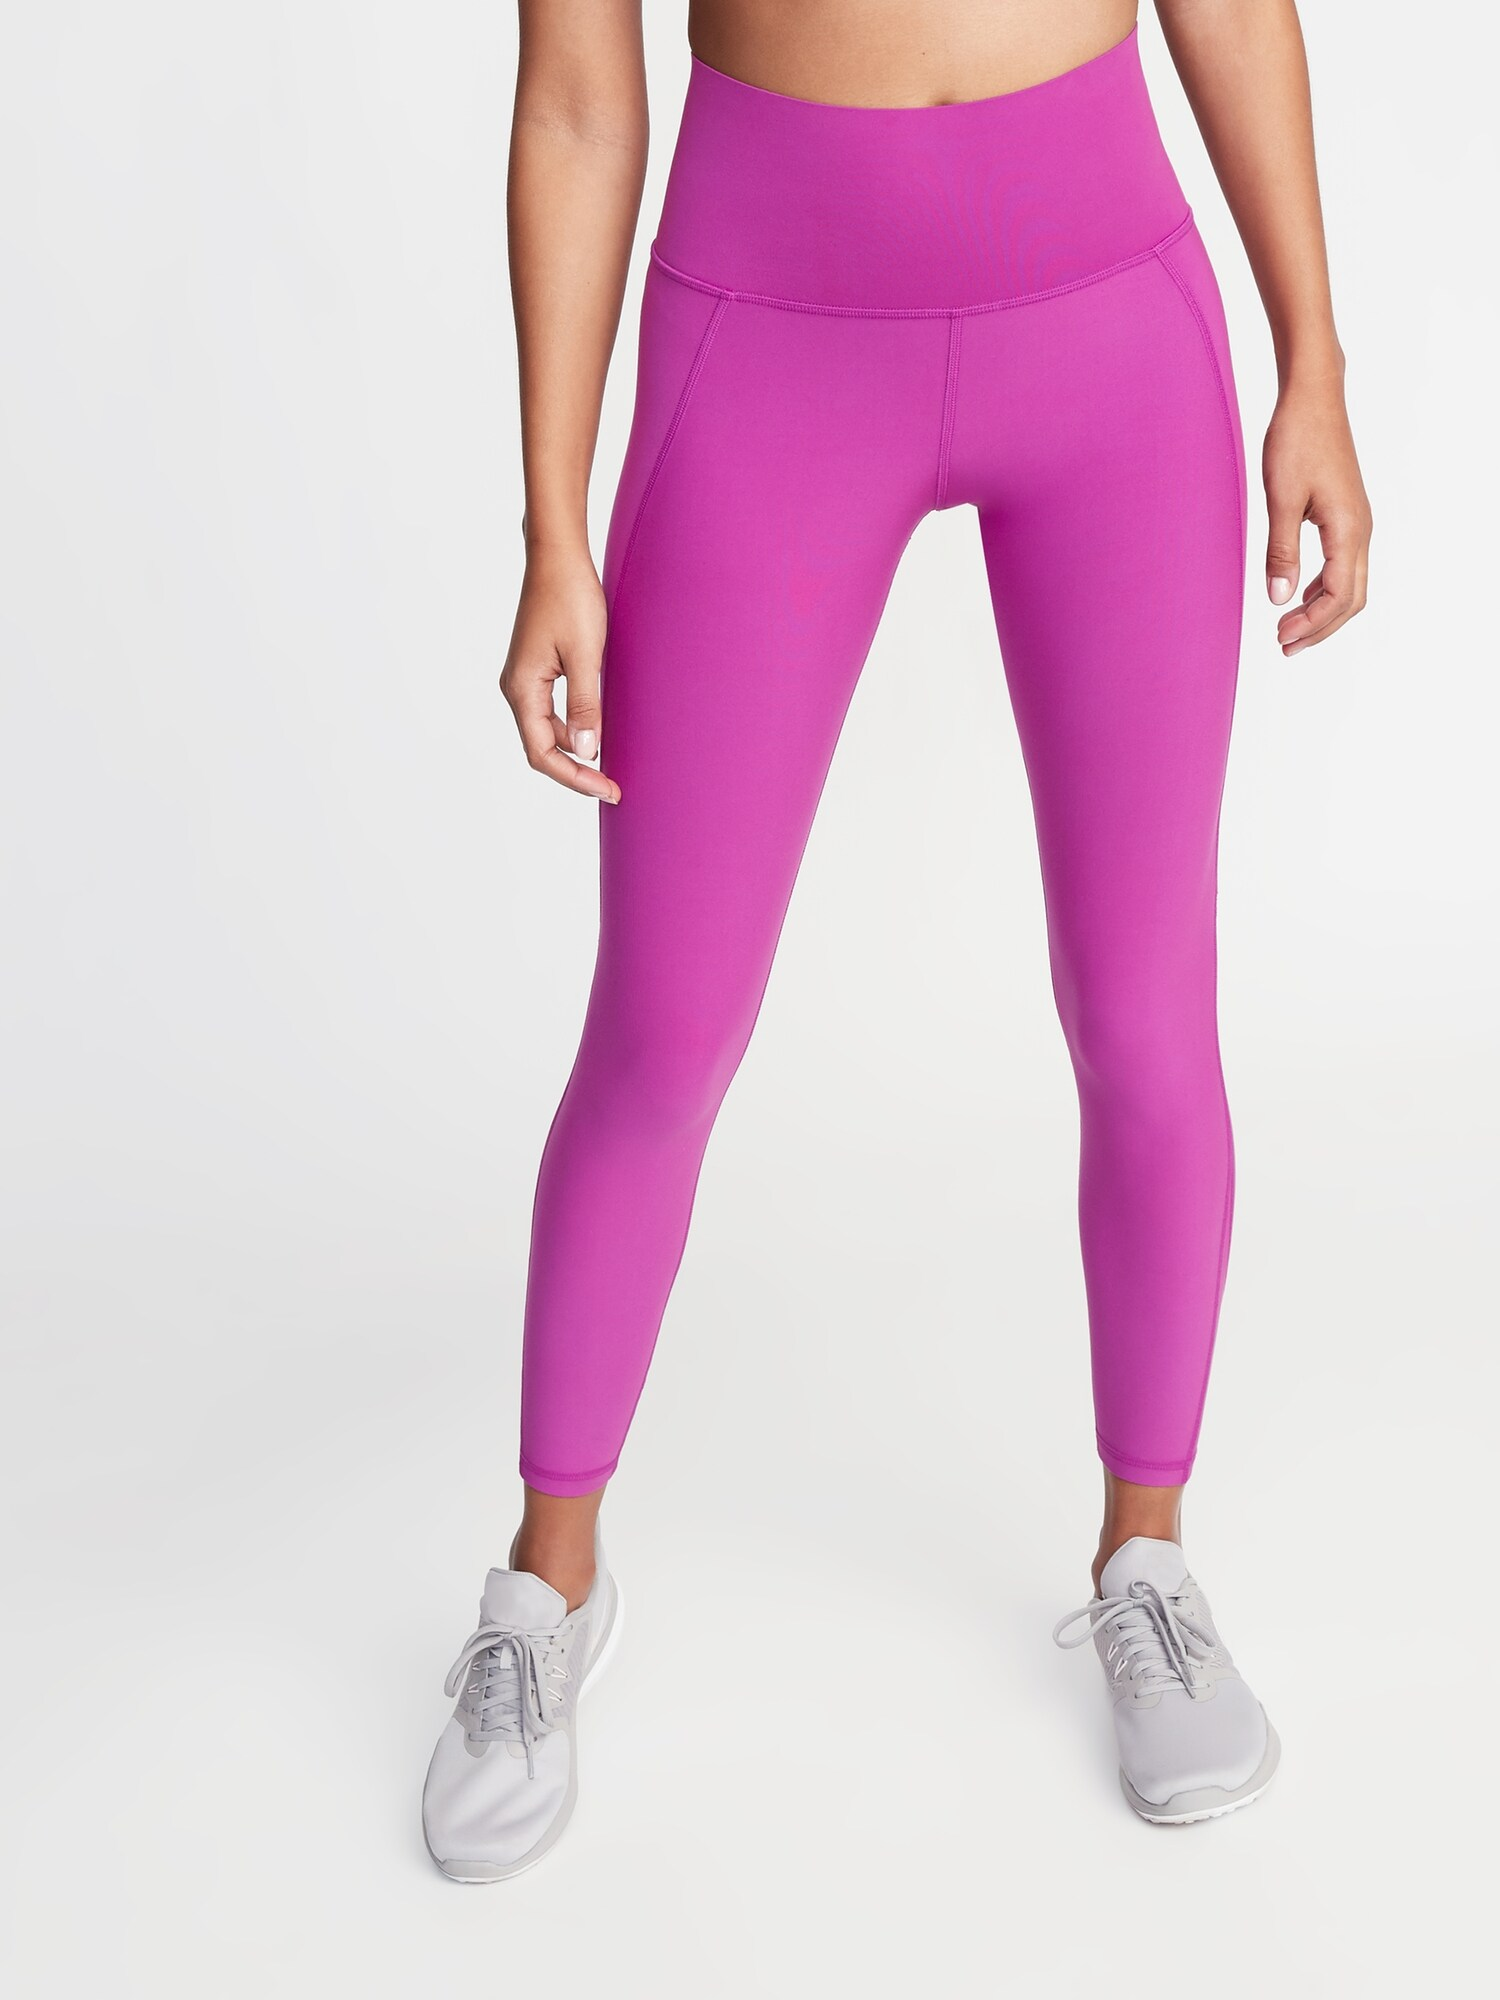 879ebaac5d High-Rise Elevate Built-In Sculpt 7/8-Length Compression Leggings for